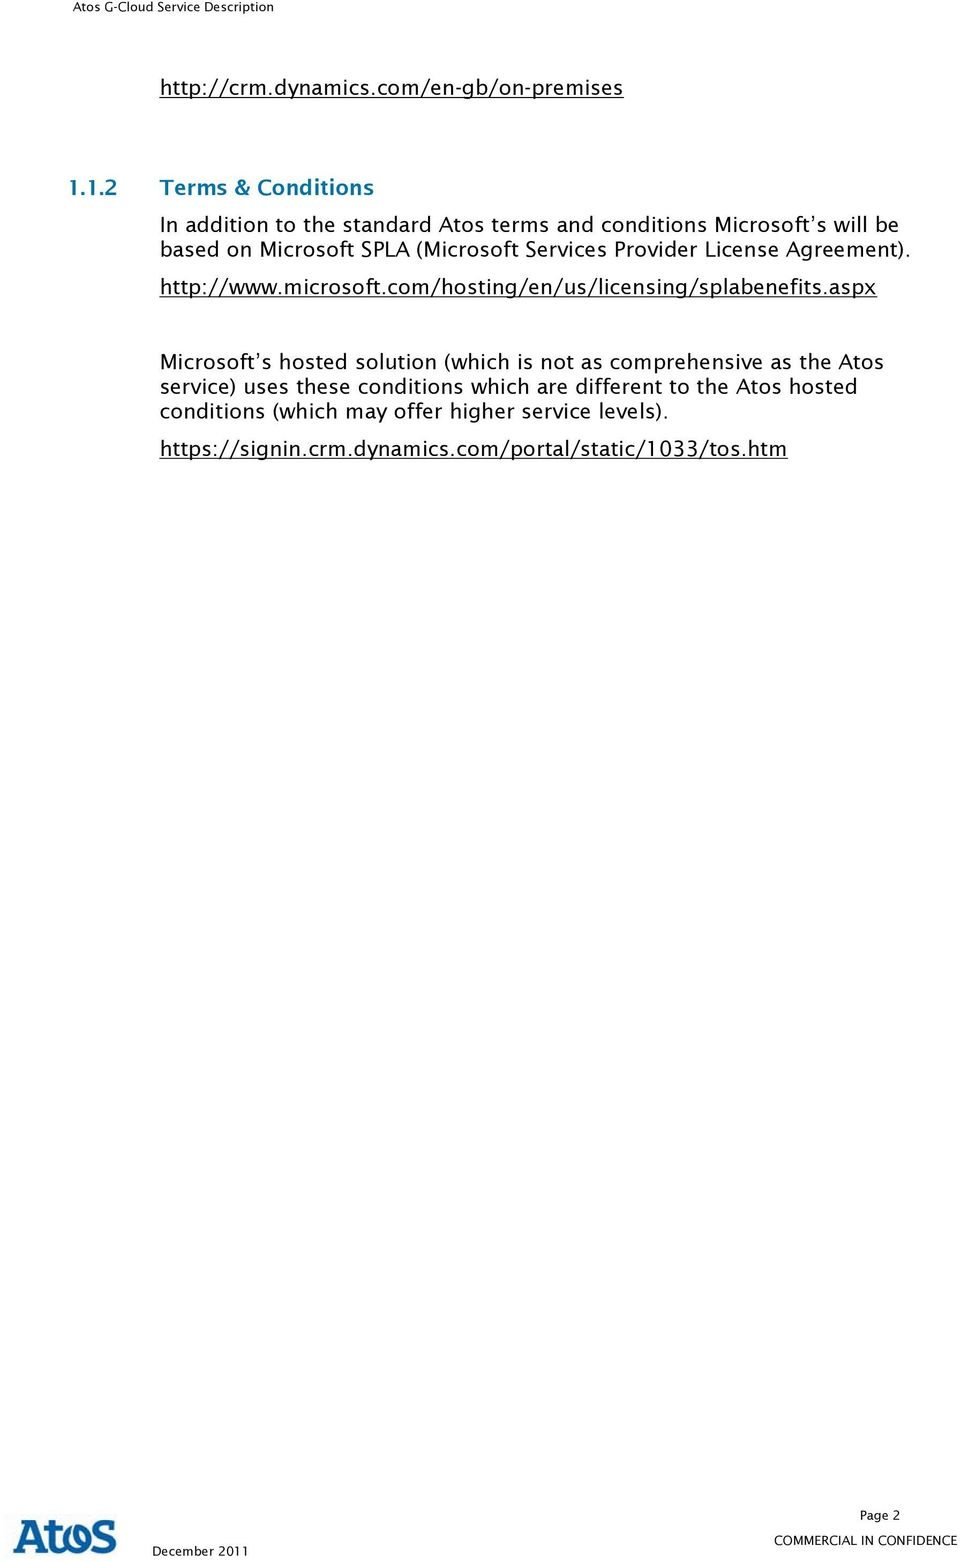 Services Provider License Agreement). http://www.microsoft.com/hosting/en/us/licensing/splabenefits.